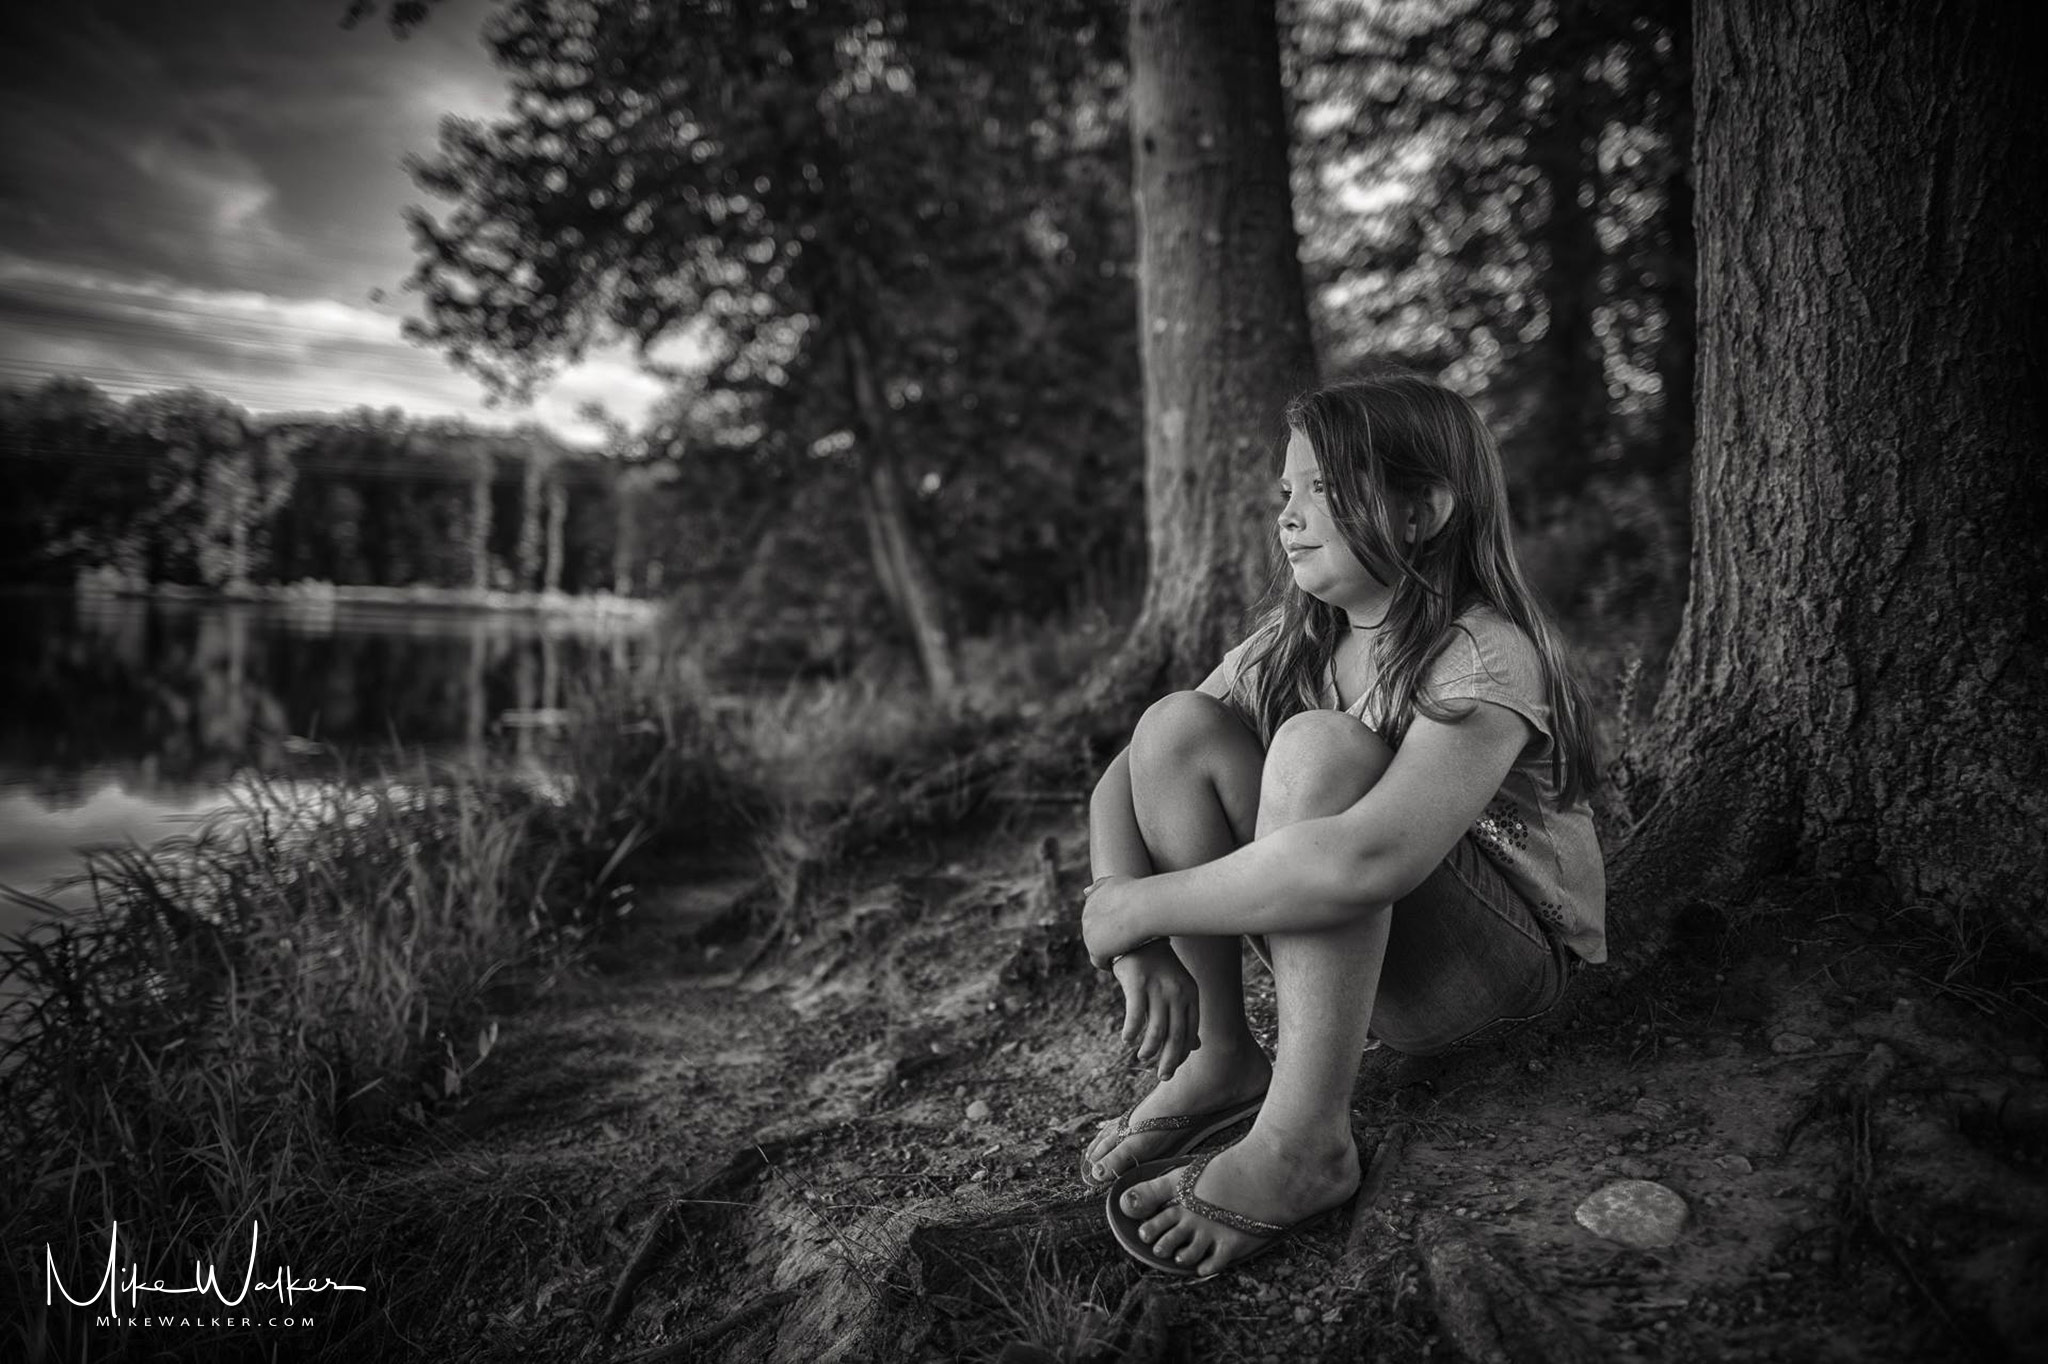 Amanda sitting by the pond. Family photography © Mike Walker.